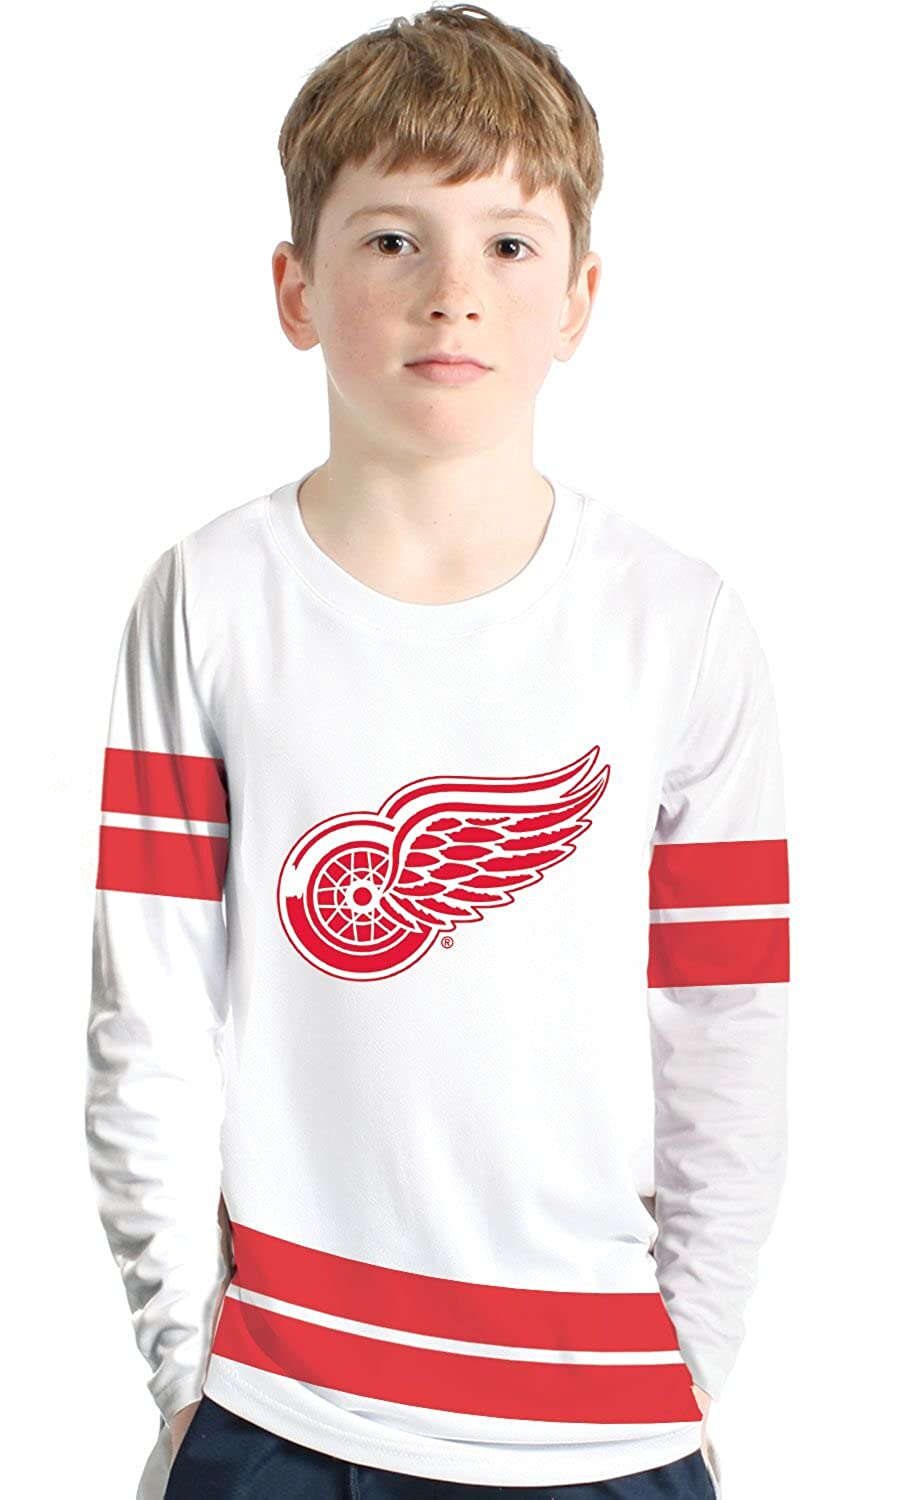 NHL Authentic Scrimmage Youth Shirt - Detroit Red Wings Levelwear